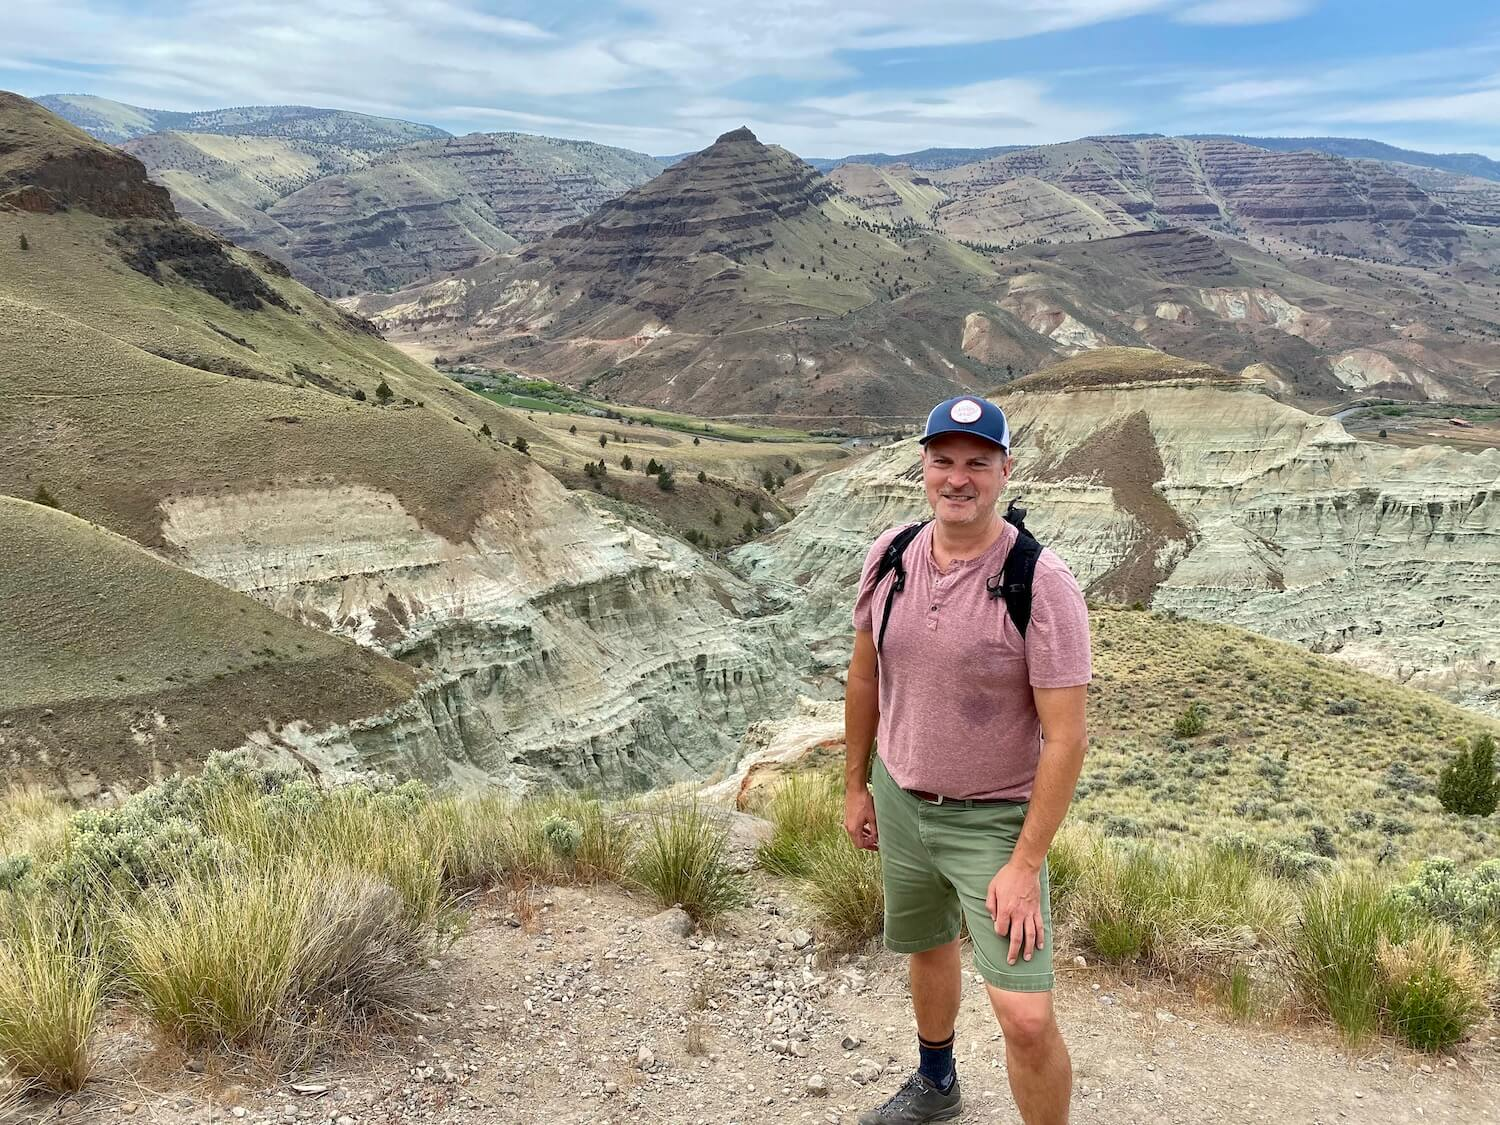 Matthew Kessi poses for a photo at the overlook to the Blue Basin in John Day Fossil Beds National Monument. The canyons are a variety of blue and green colors and continue up to grass covered slopes leading to pointed peaks. There are endless canyons in the background that flow to partly cloudy skies. Matthew is wearing a red shirt and green shorts and a backpack and blue hat. He looks sweaty, as if he is hiking.